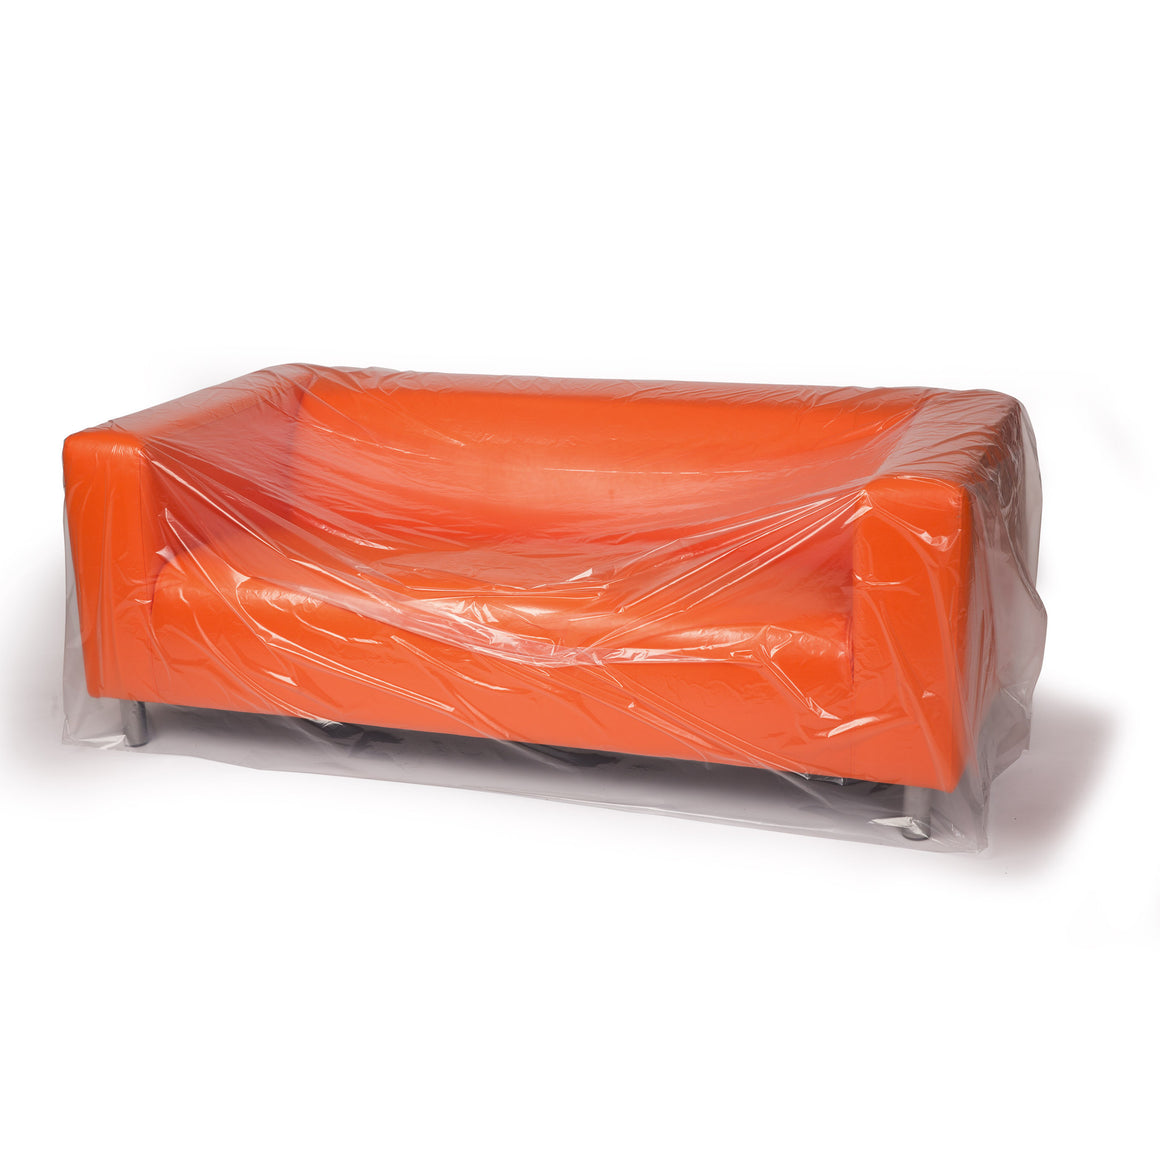 Clear Plastic Furniture Covers Home Decor